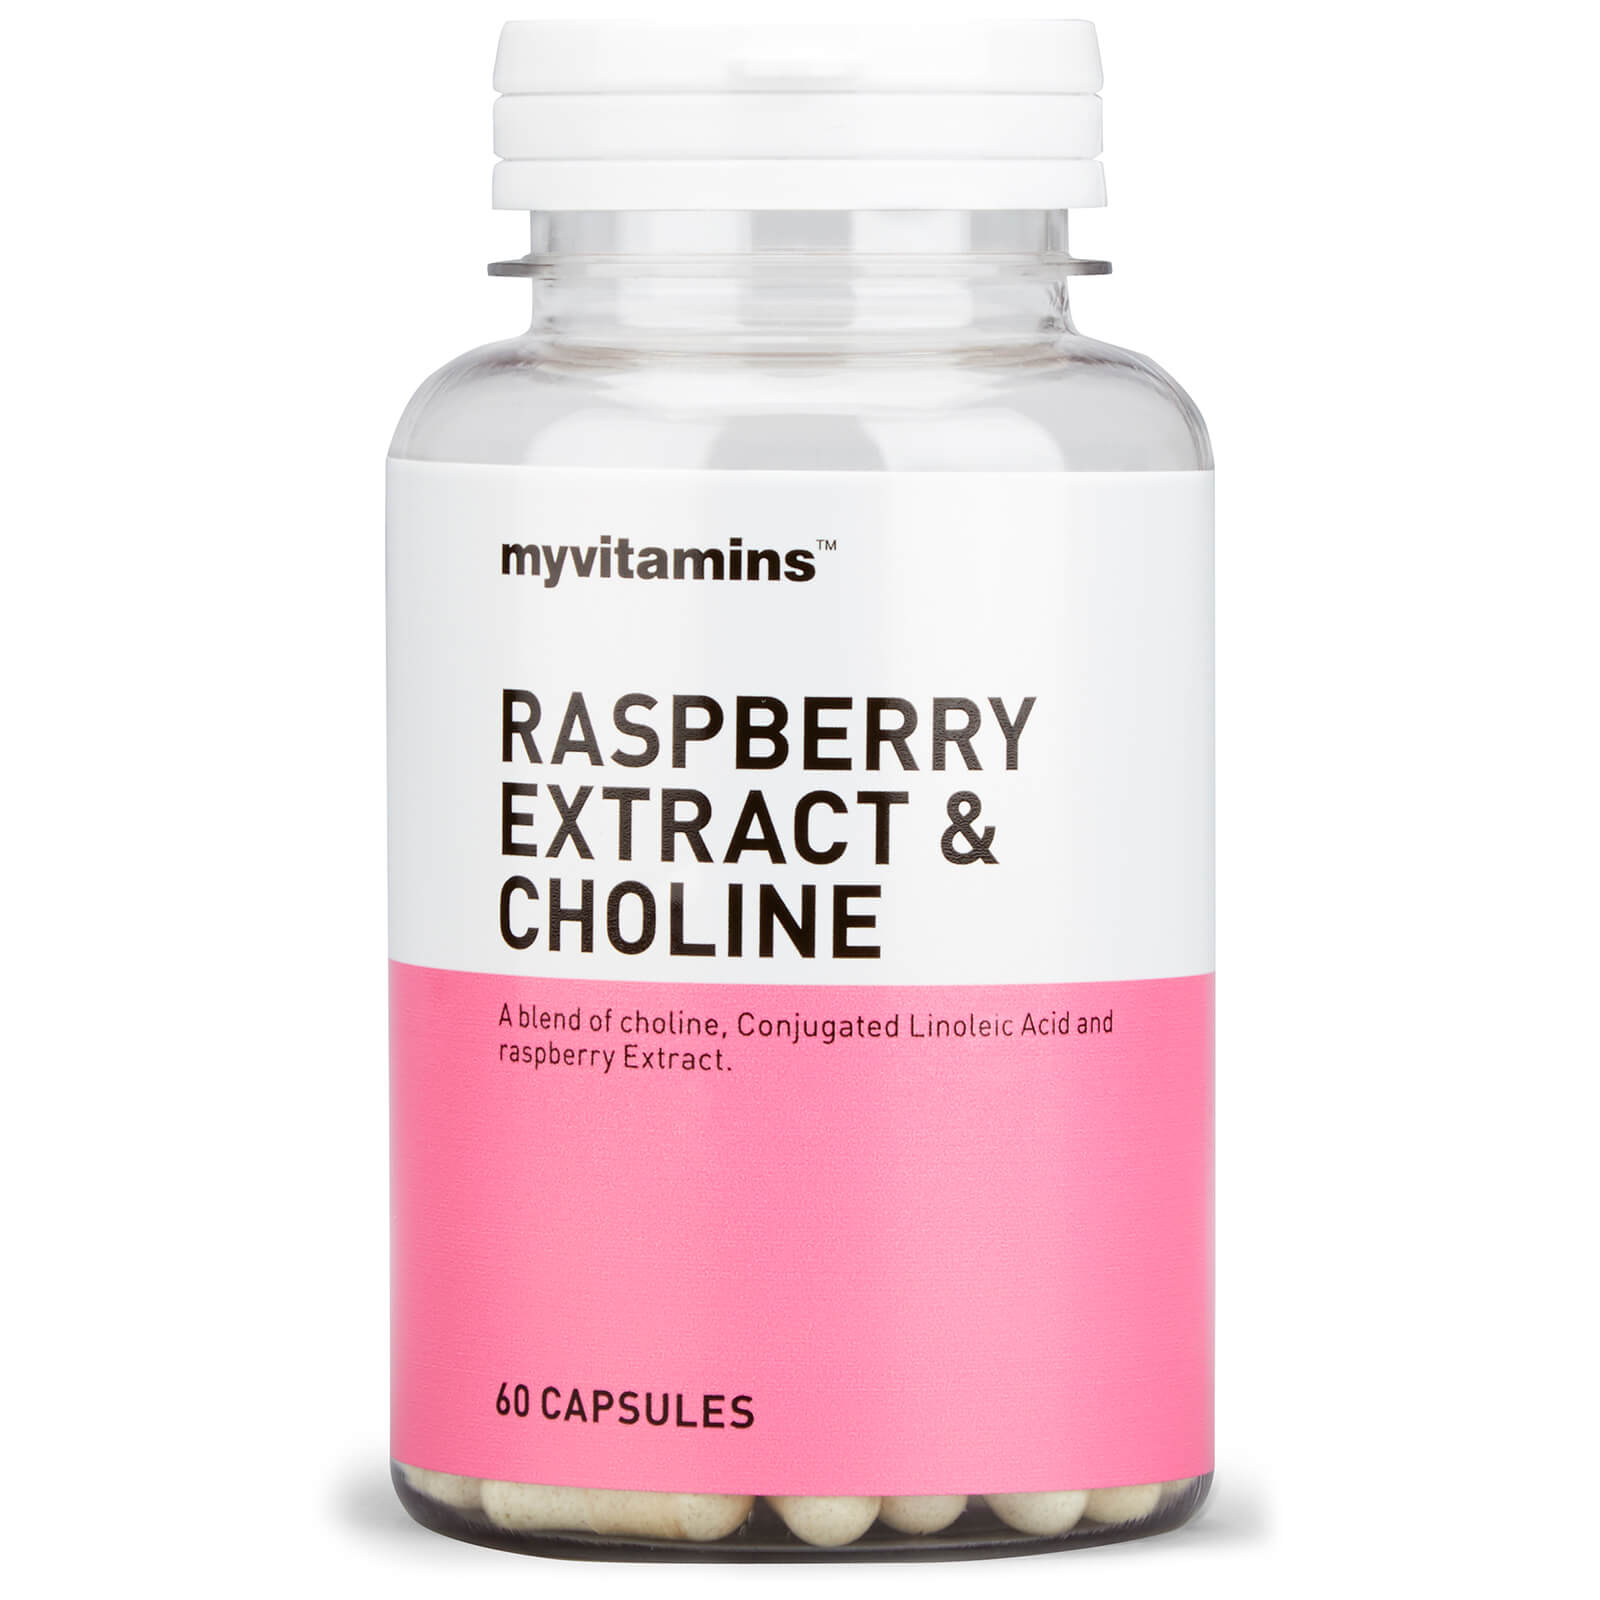 Raspberry Extract & Choline, 60 Capsules